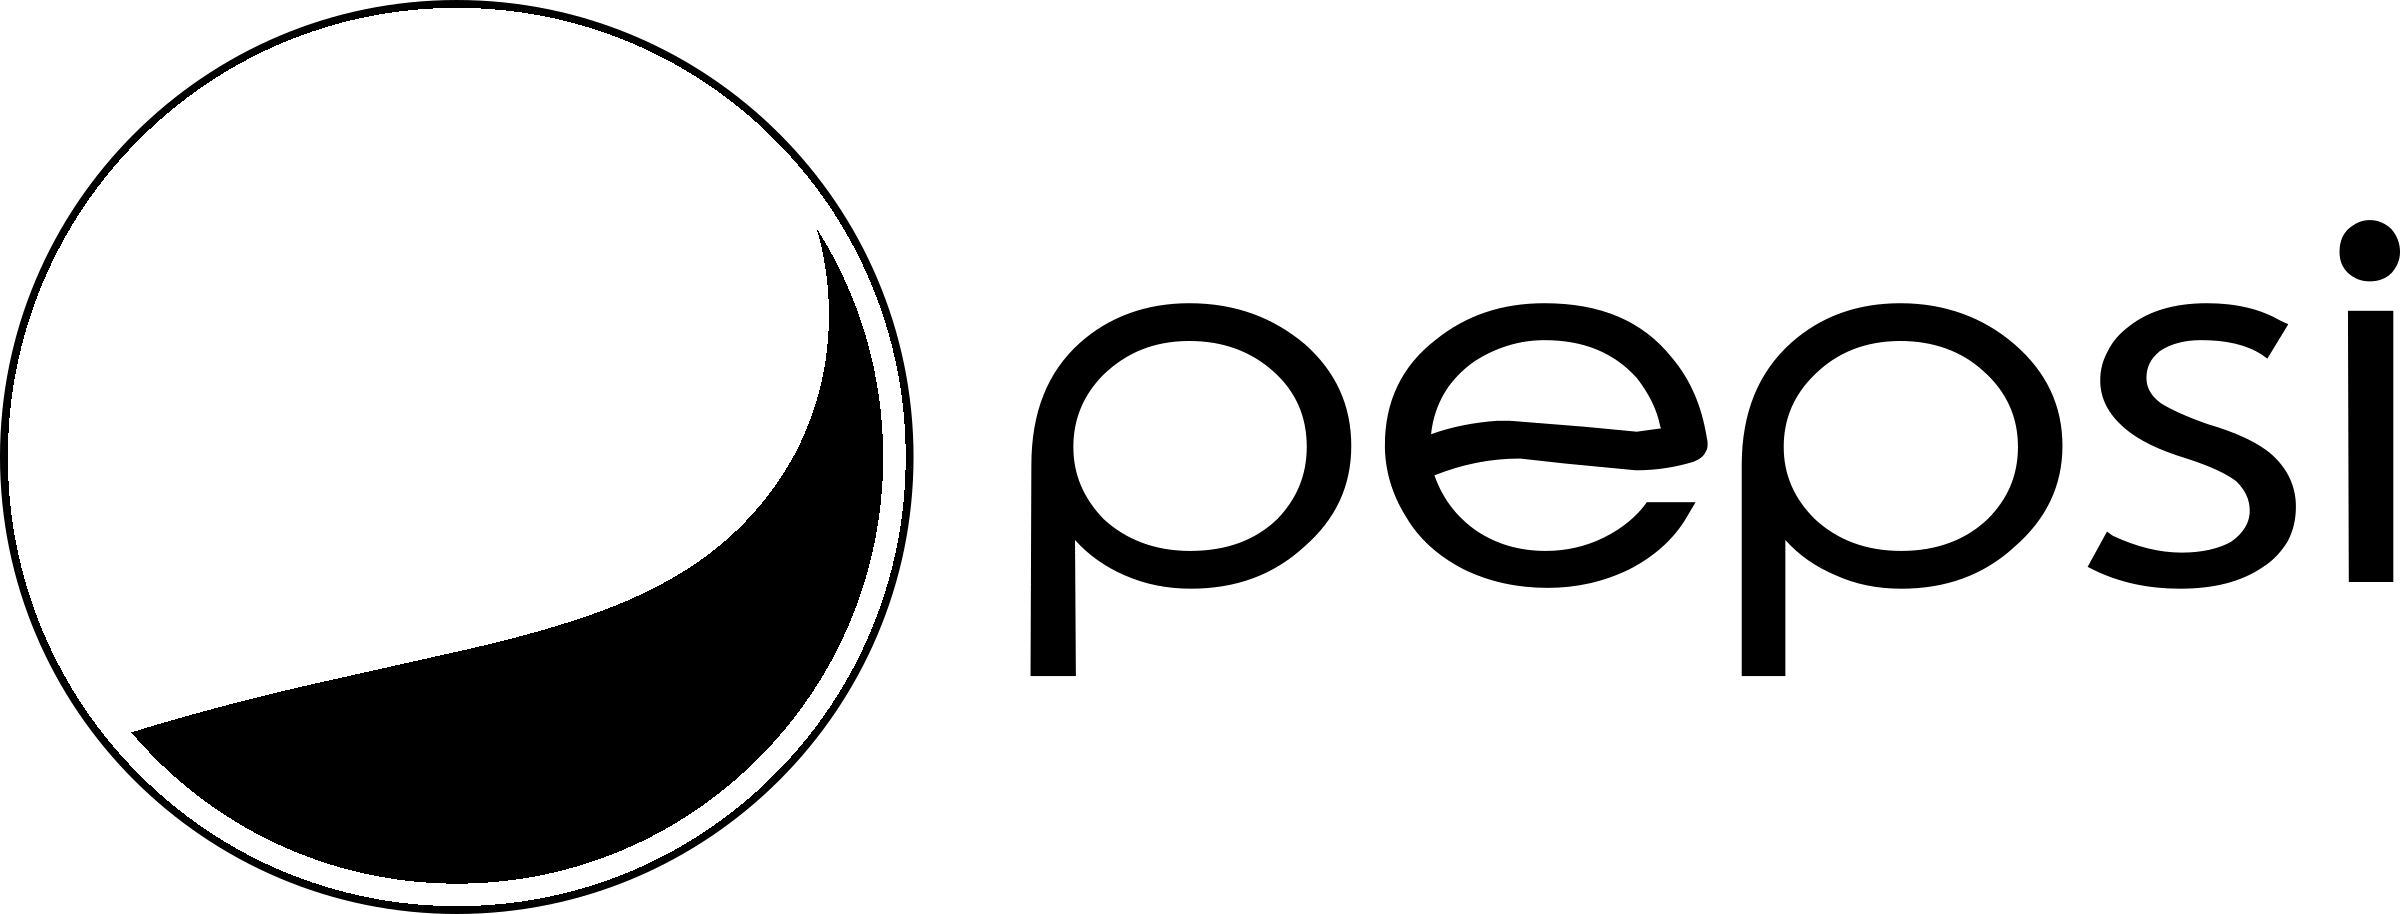 pepsi-logo-black-and-white.png